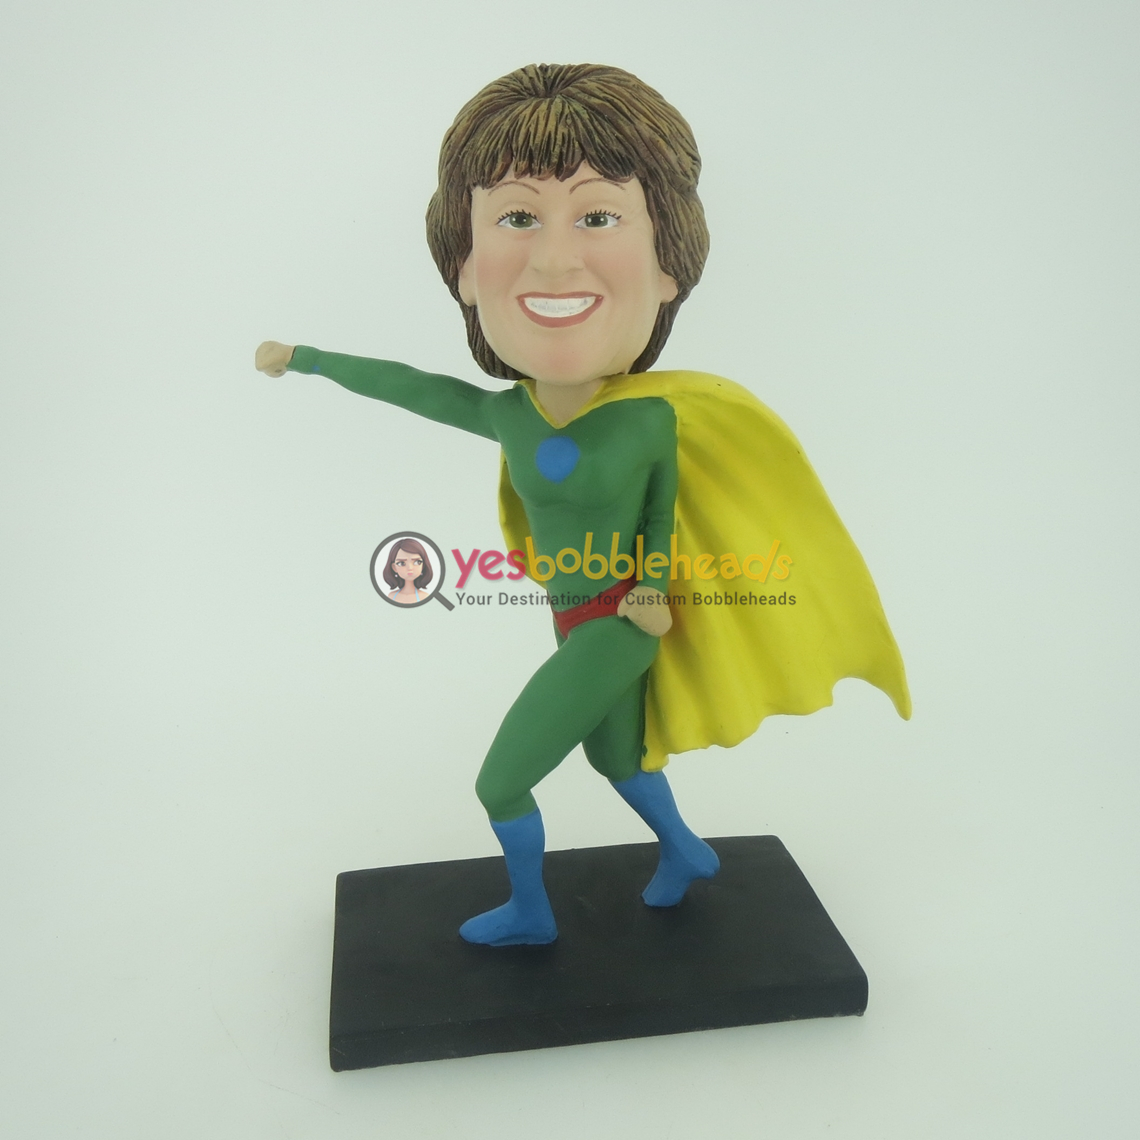 Picture of Custom Bobblehead Doll: Green Superwoman